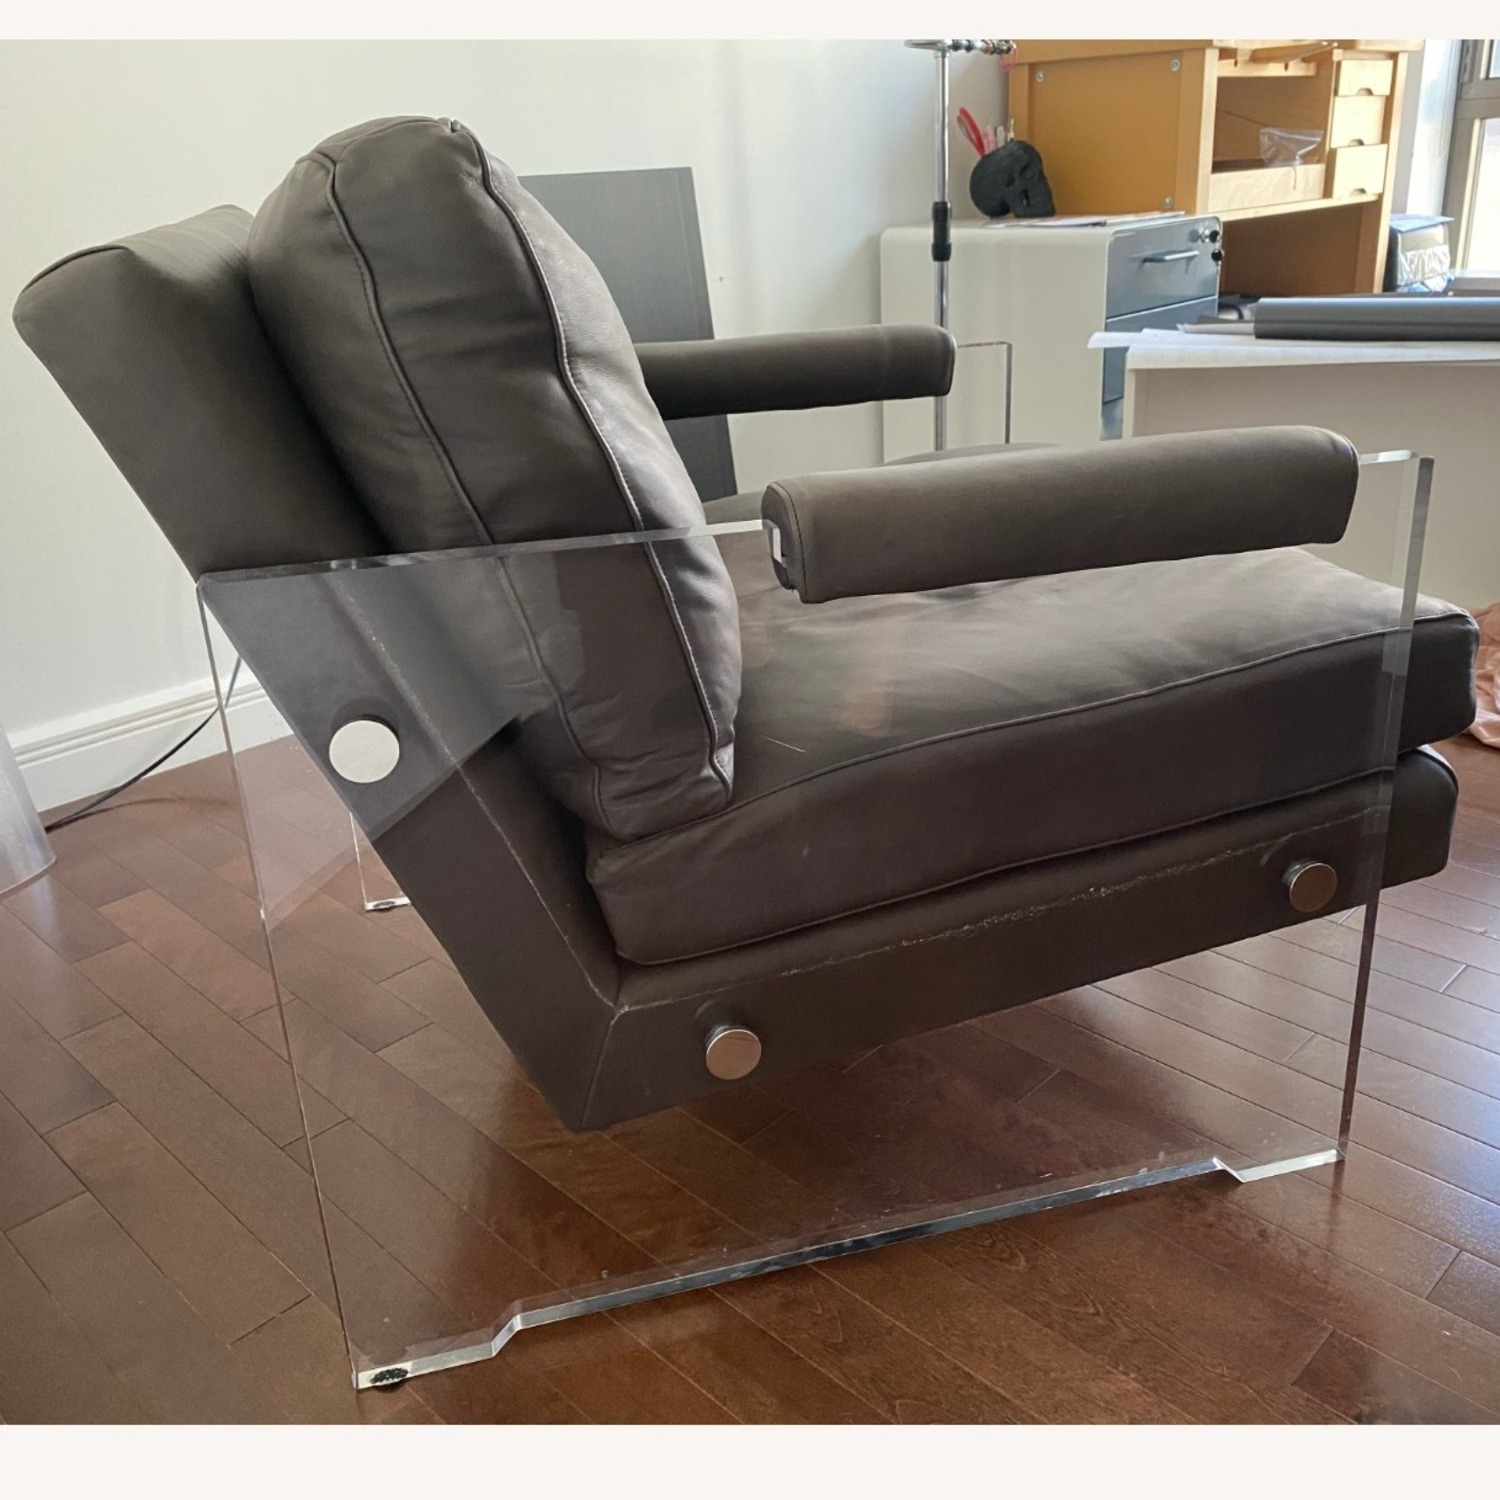 Restoration Hardware Leather Luca Chair - image-22